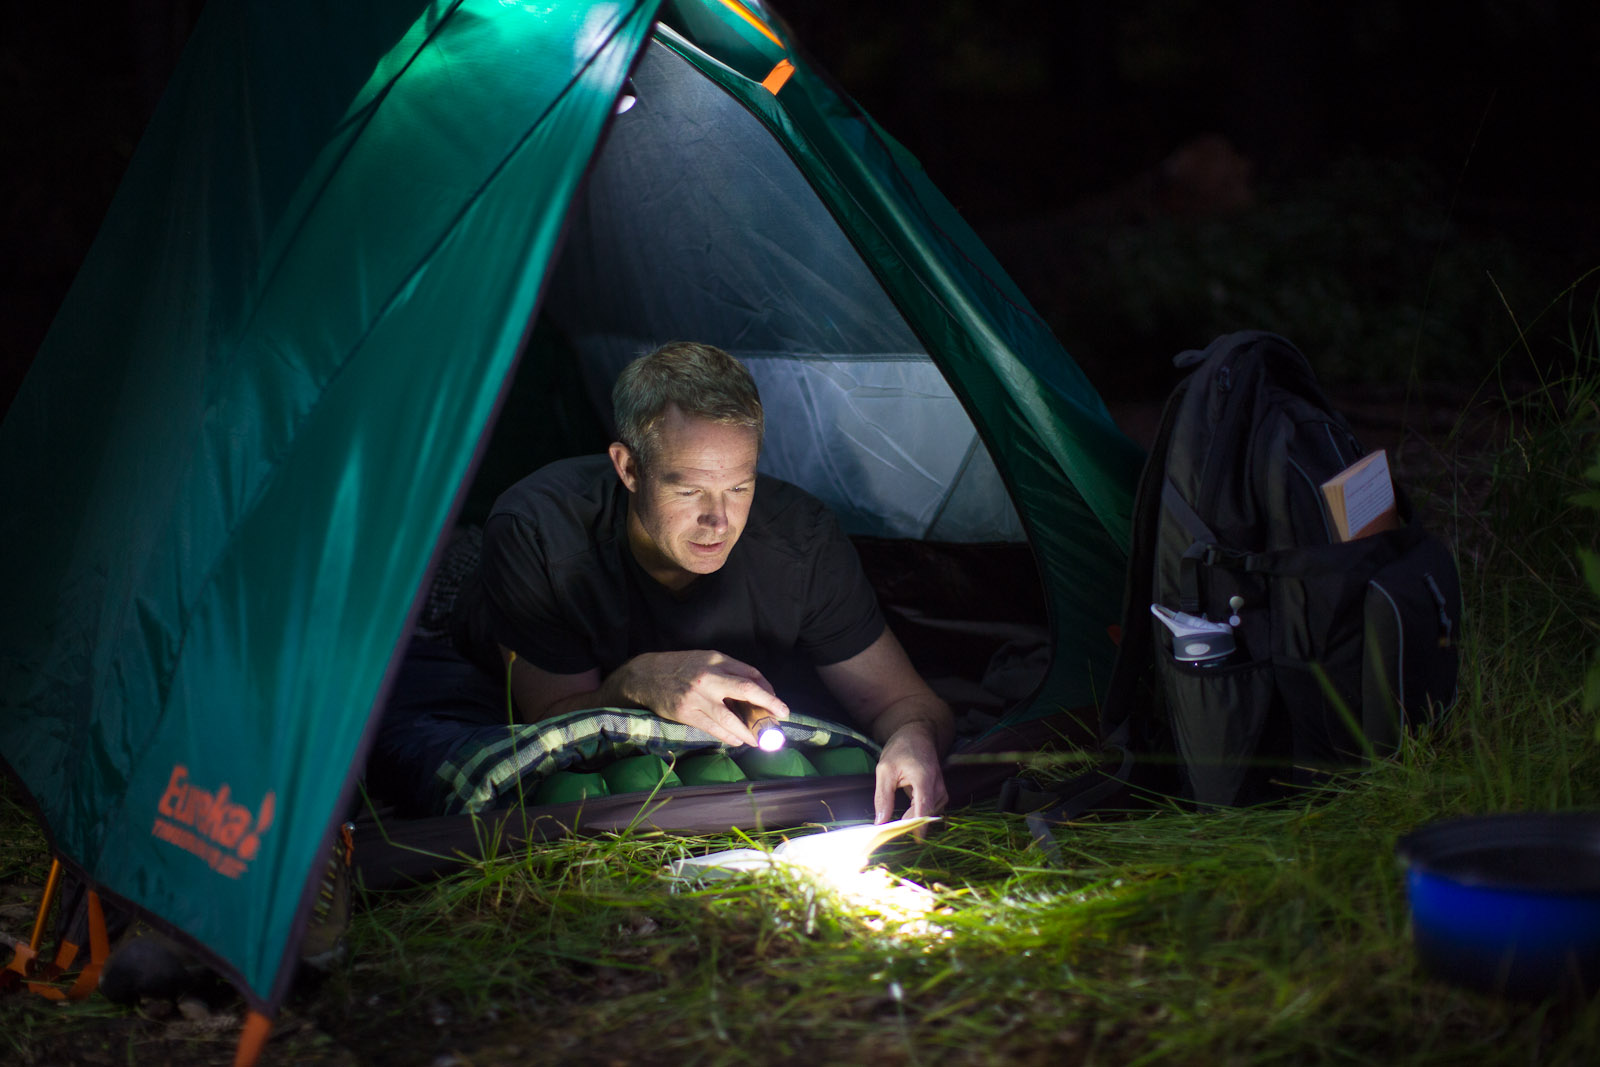 A list of camping essentials